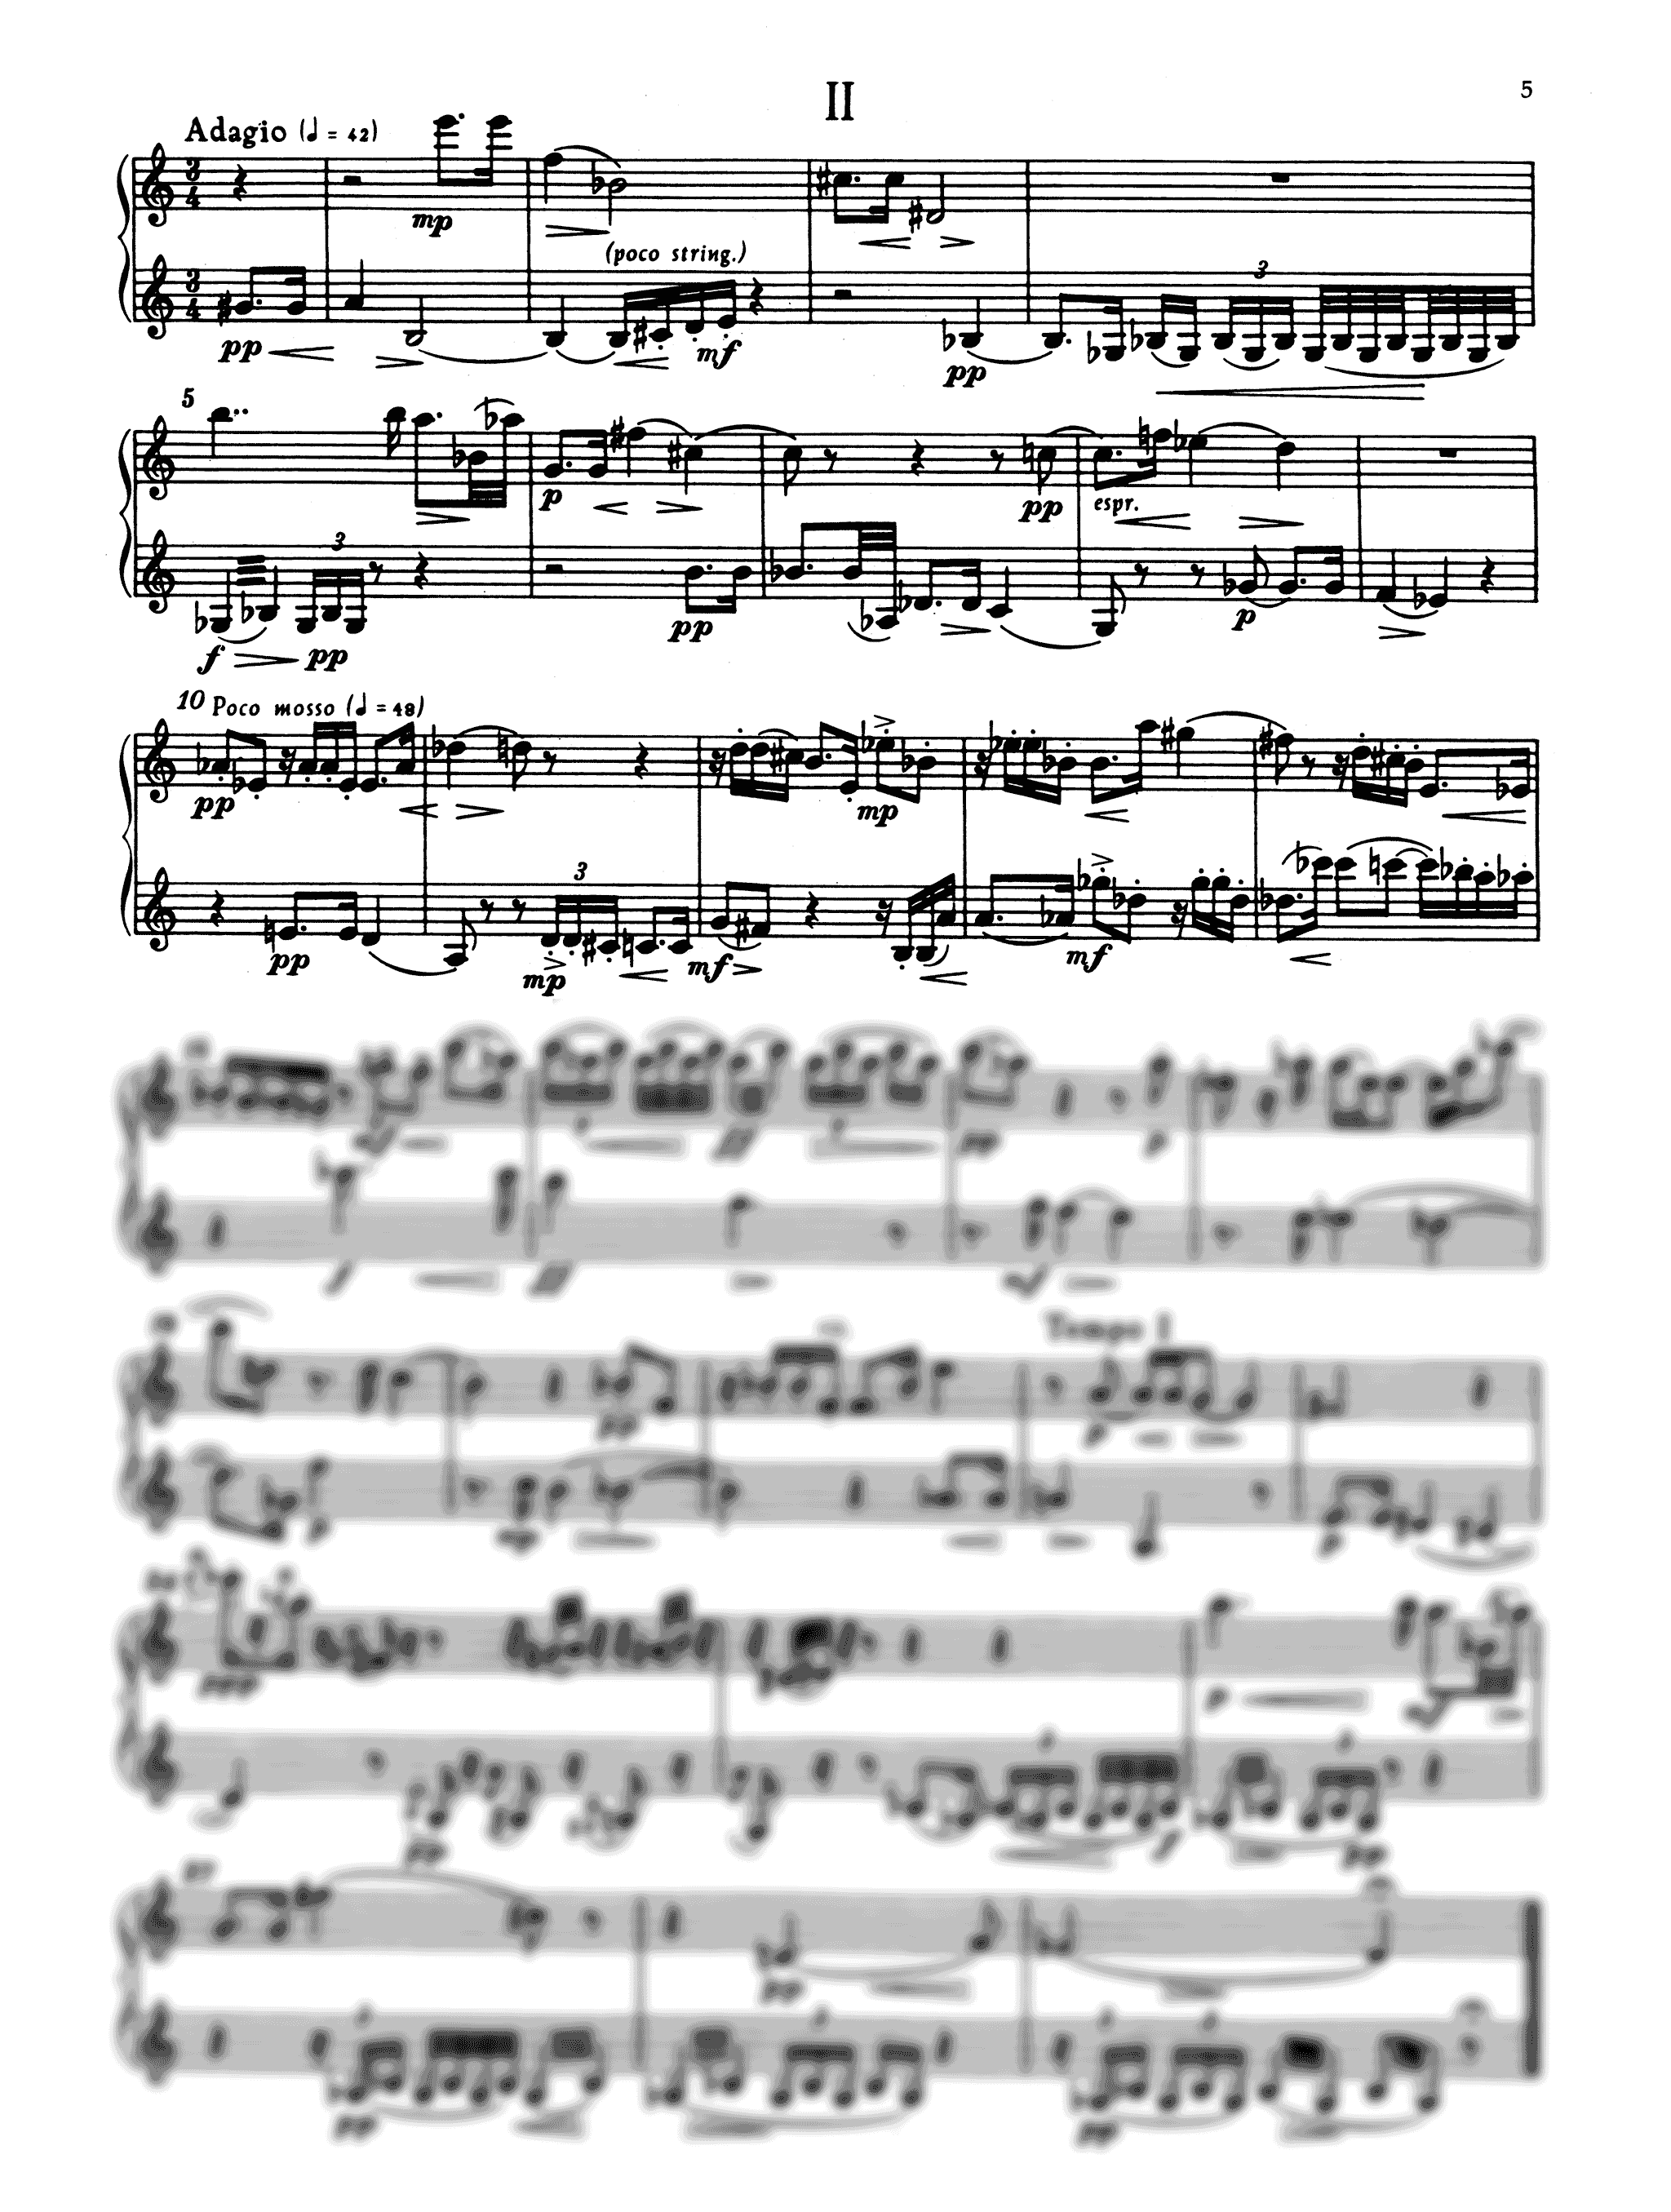 Krenek Sonatina, Op. 92/2b - Movement 2